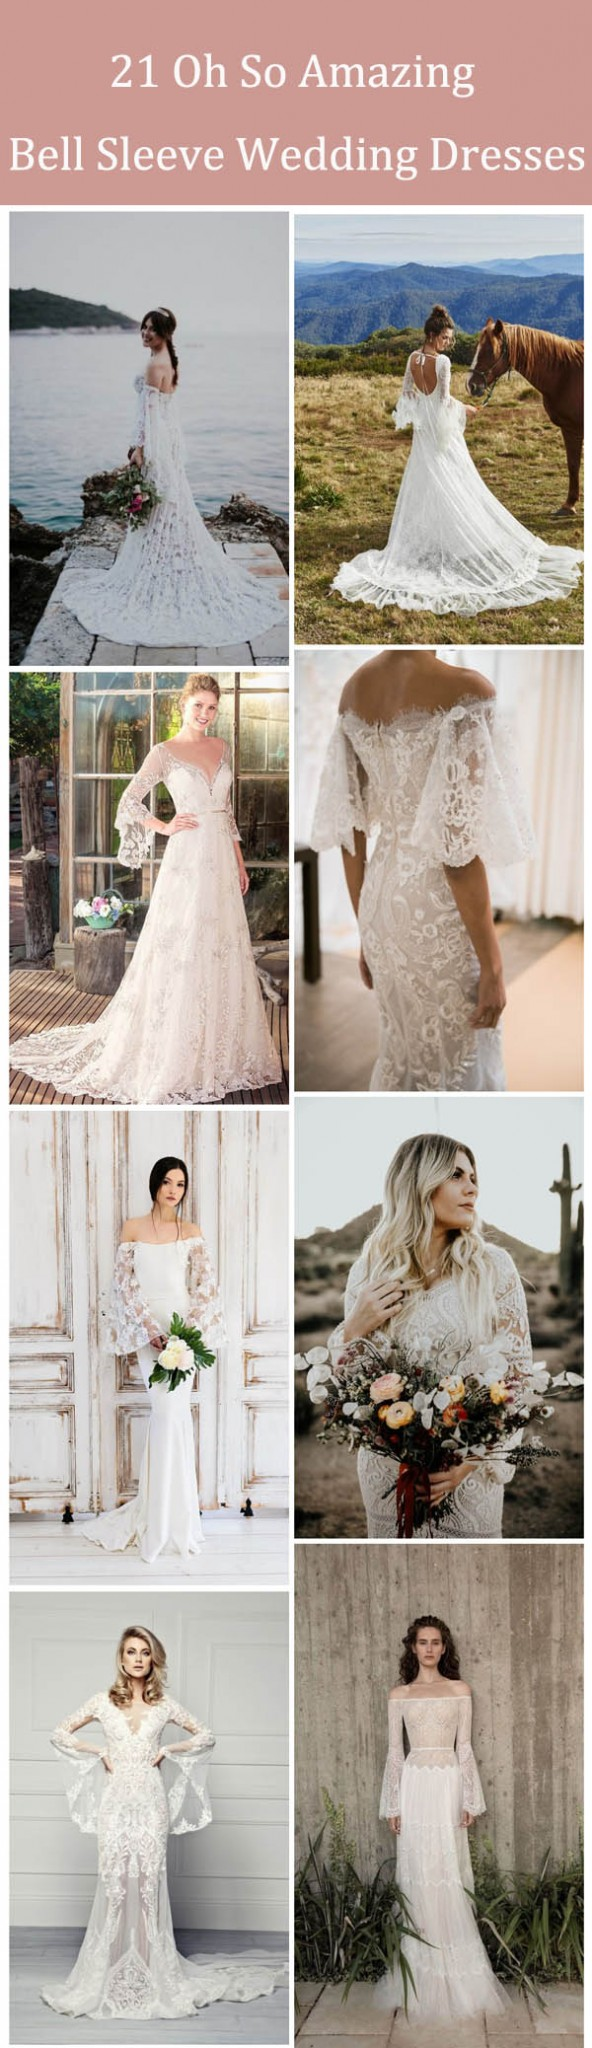 21 Oh So Amazing Bell Sleeve Wedding Dresses